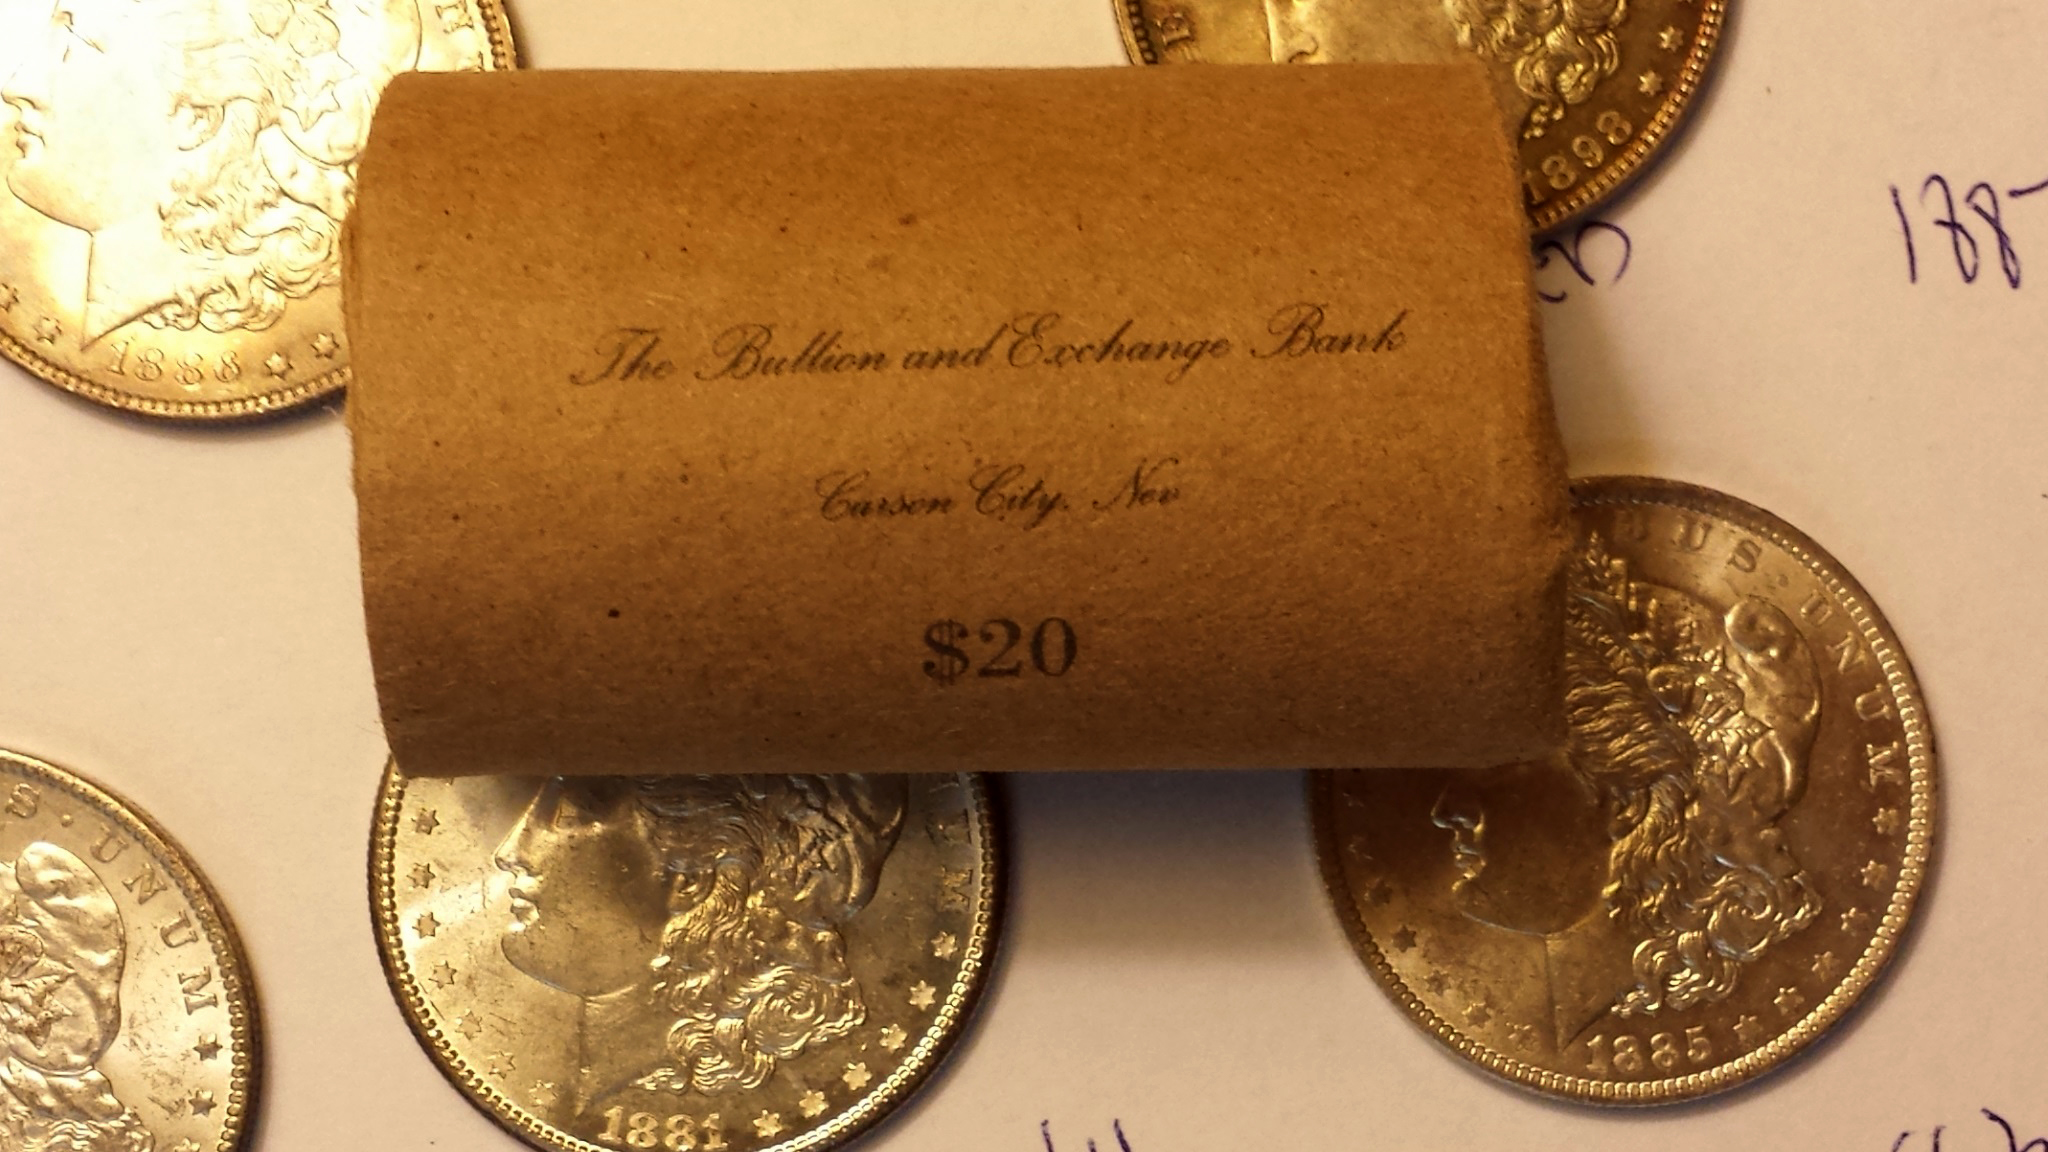 Gambling on a Morgan dollar roll